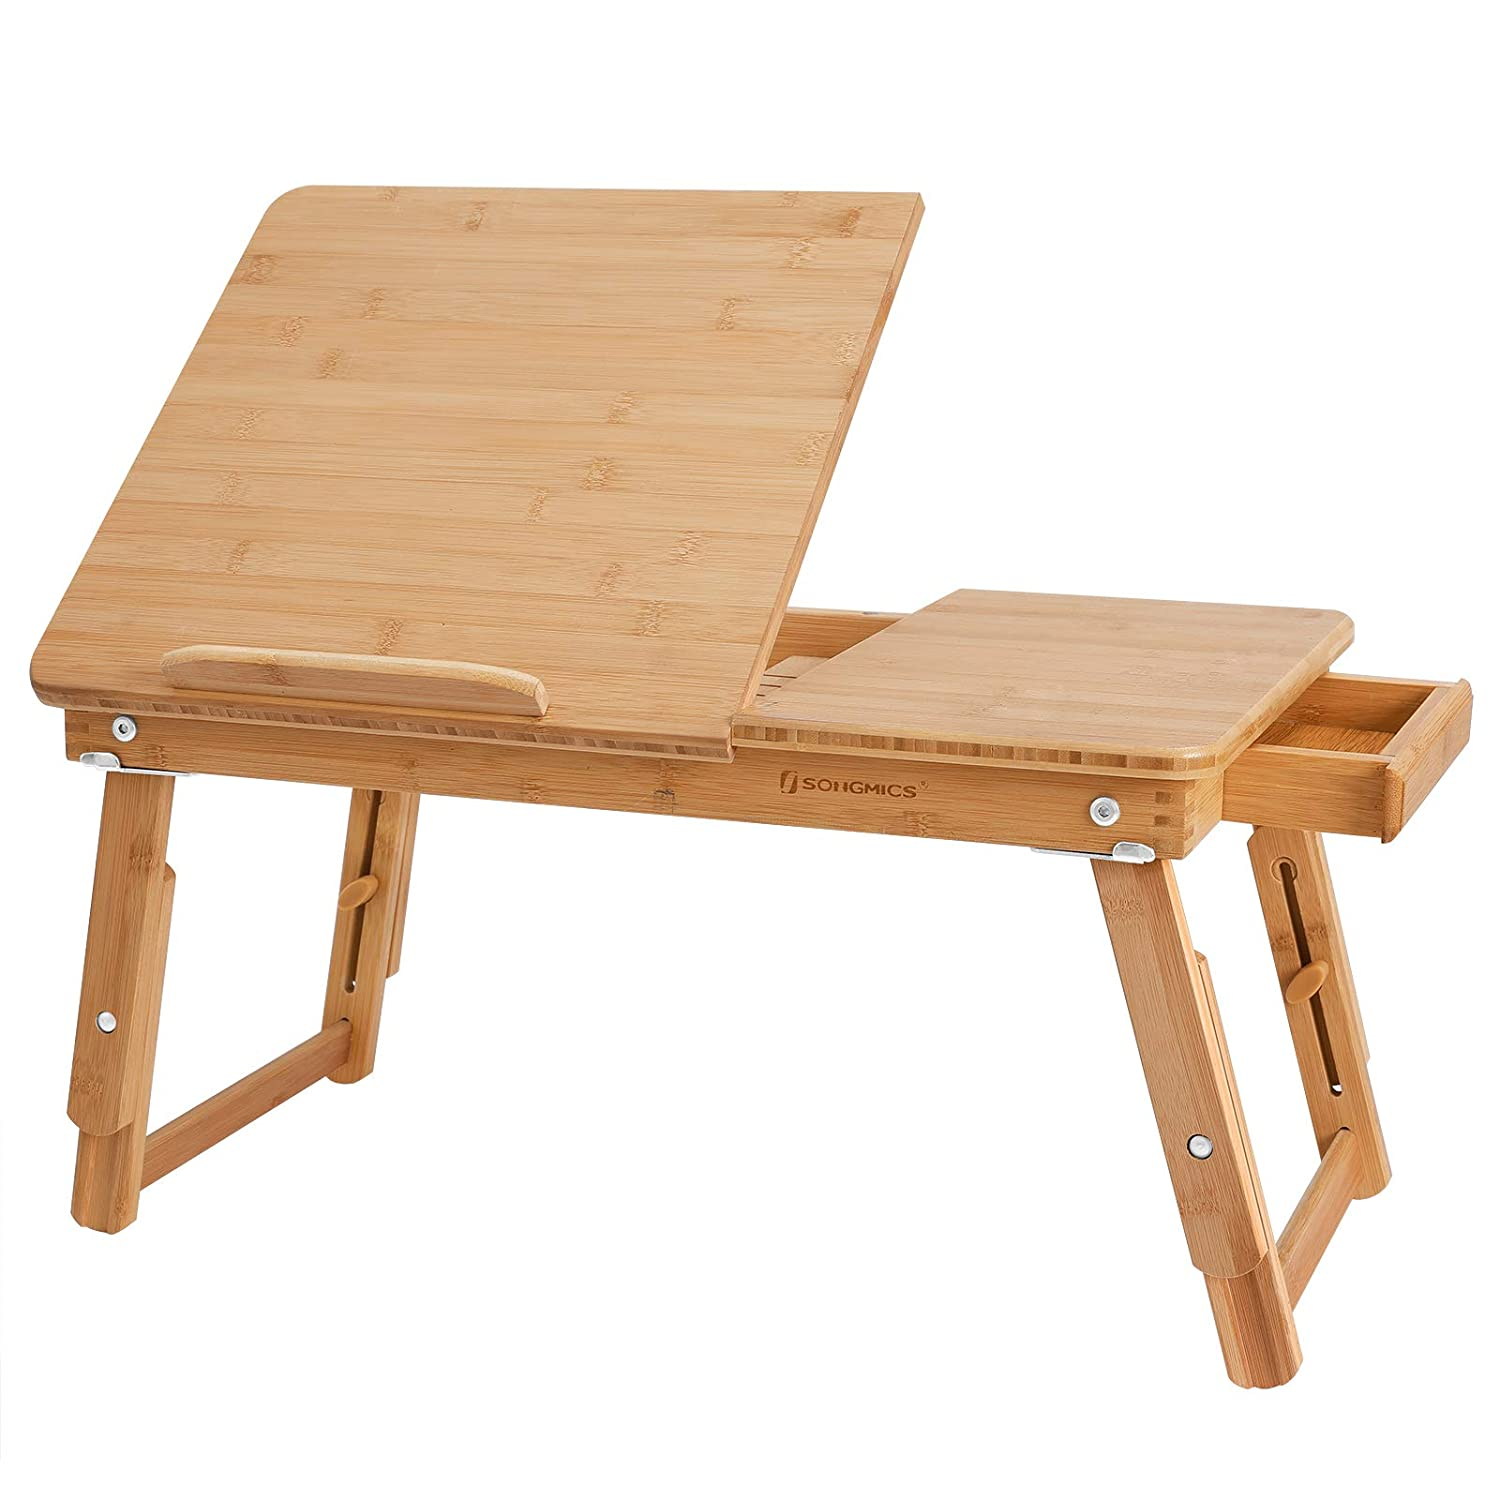 Enjoy fast, free nationwide shipping!  Family owned and operated, HawkinsWoodshop.com is your one stop shop for affordable furniture.  Shop HawkinsWoodshop.com for solid wood & metal modern, traditional, contemporary, industrial, custom, rustic, and farmhouse furniture including our Bamboo Tilting Top Laptop Desk.